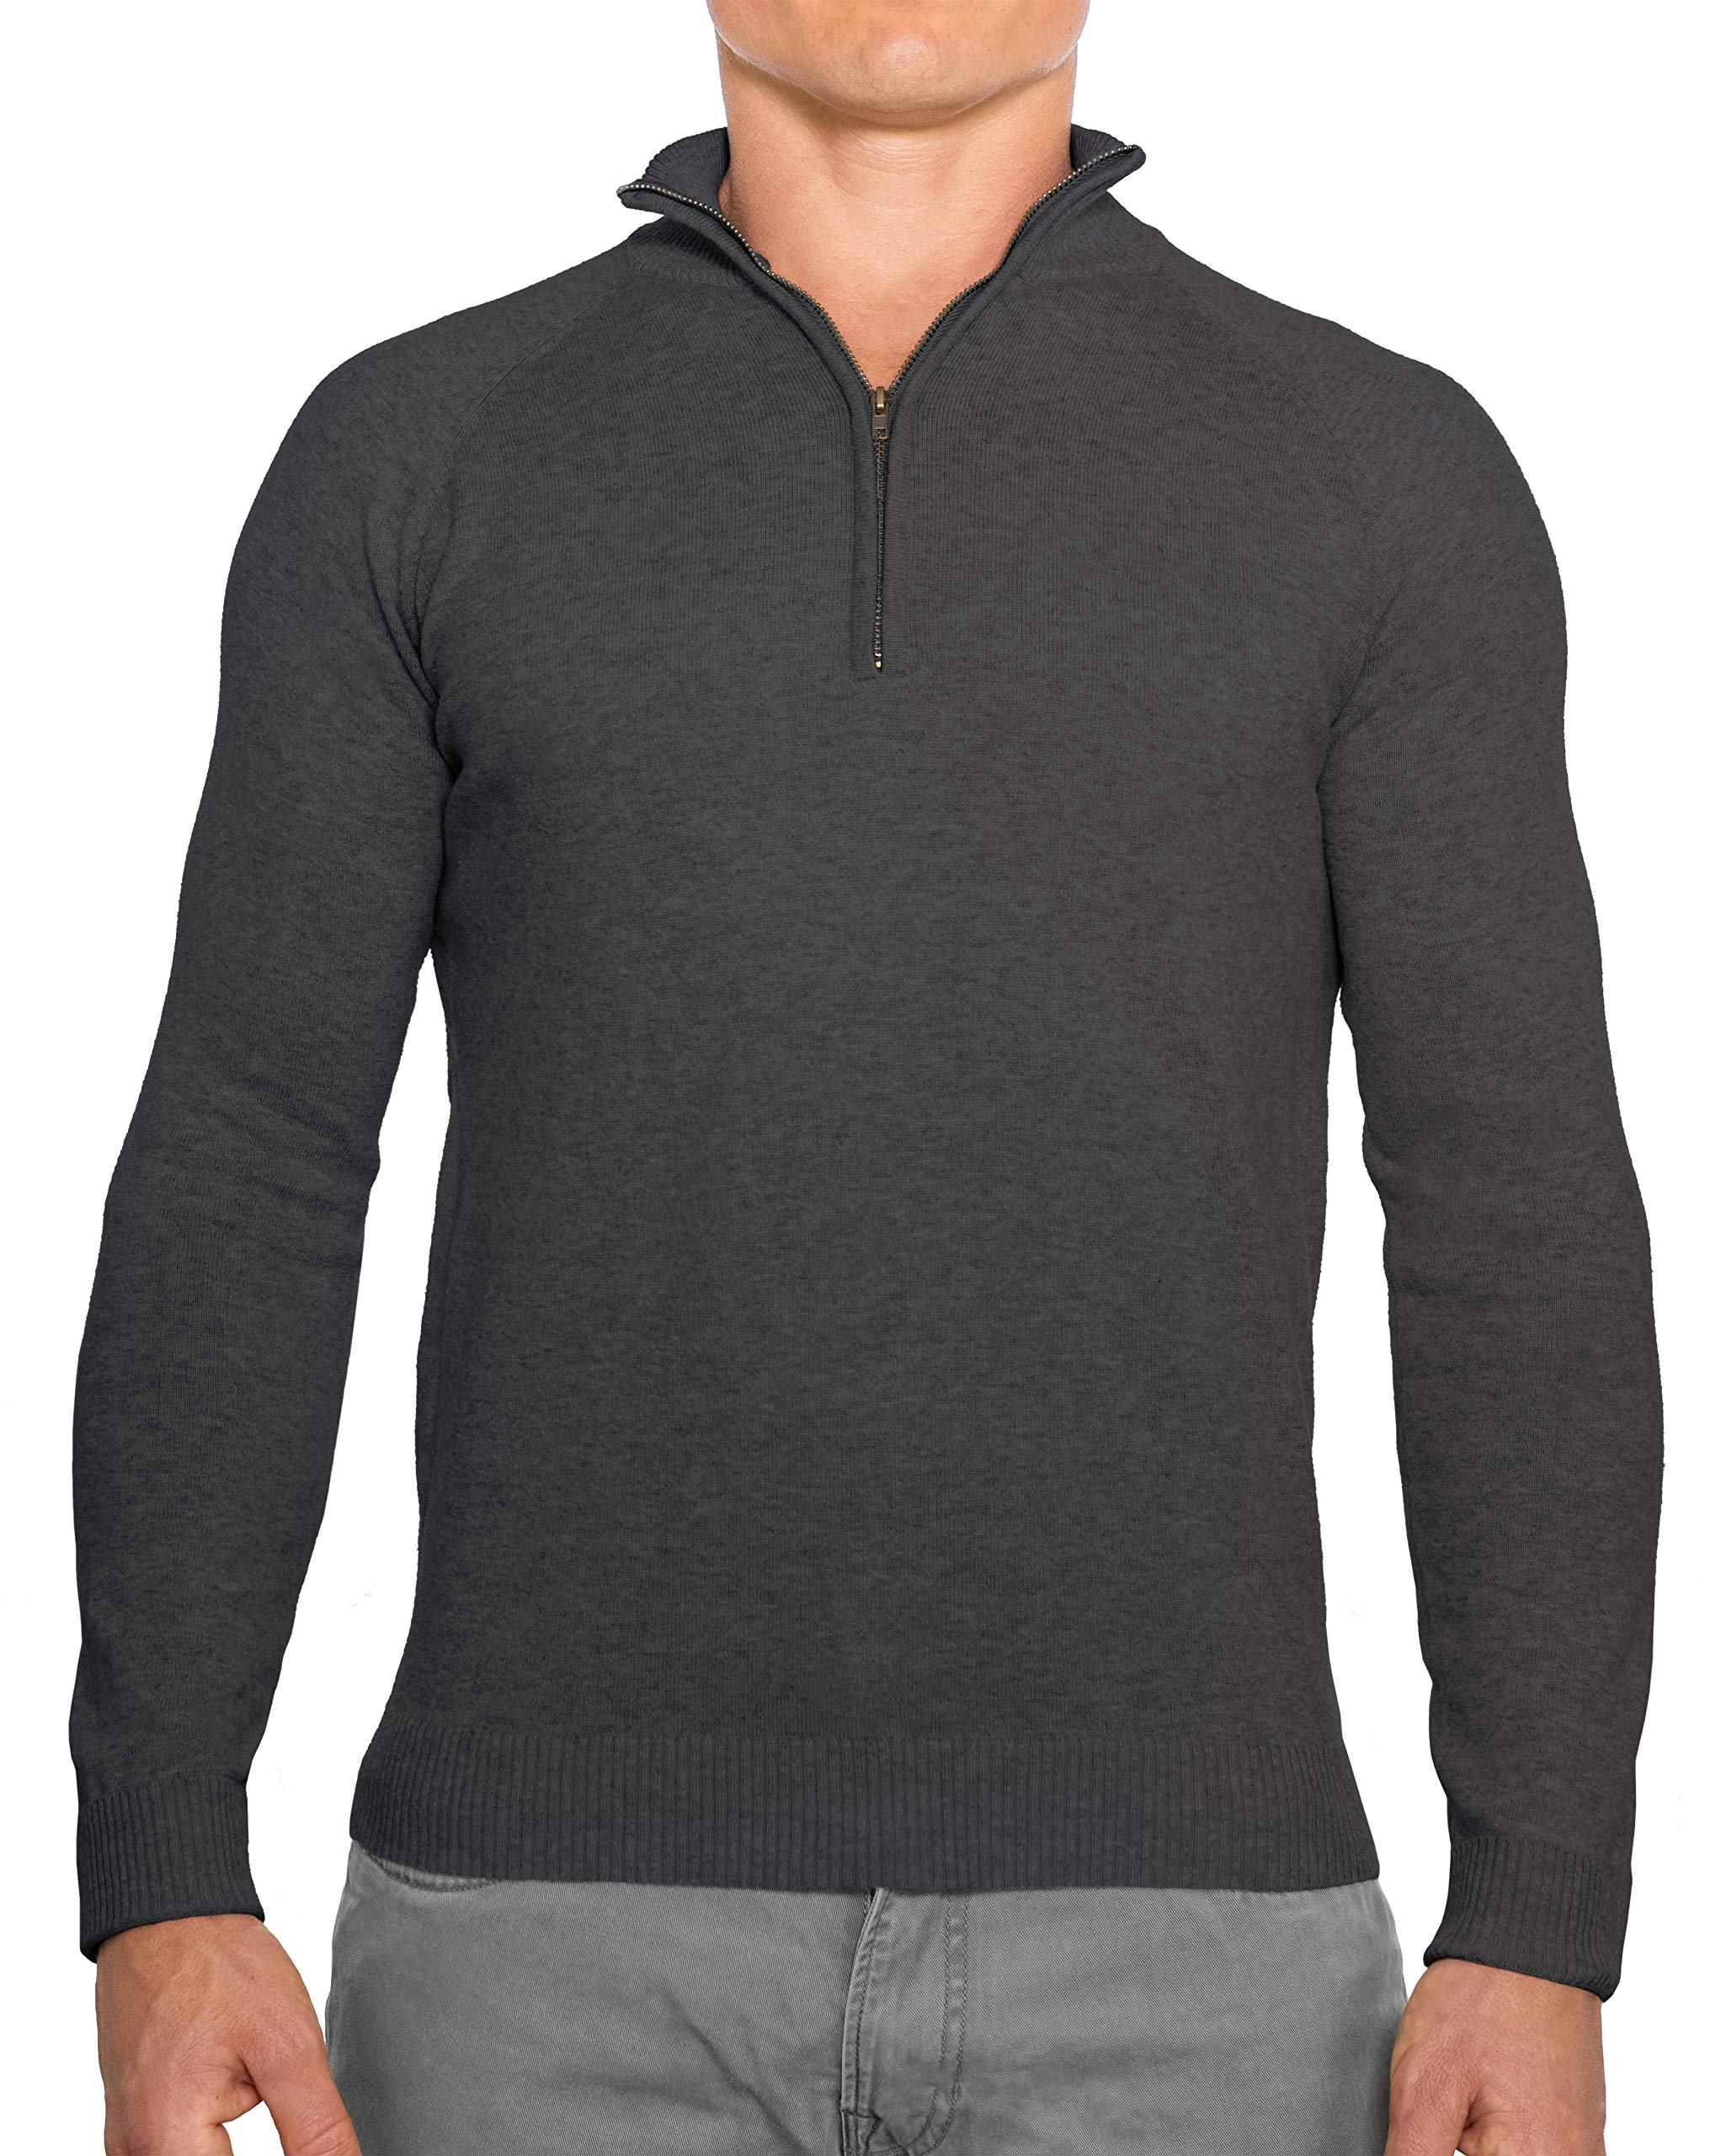 CC Perfect Slim Fit 1/4 Quarter Zip Pullover Men | Durable Mens Sweater with Wash Friendly Fabric | Soft Fitted Sweaters for Men, Large, Charcoal Grey by Comfortably Collared